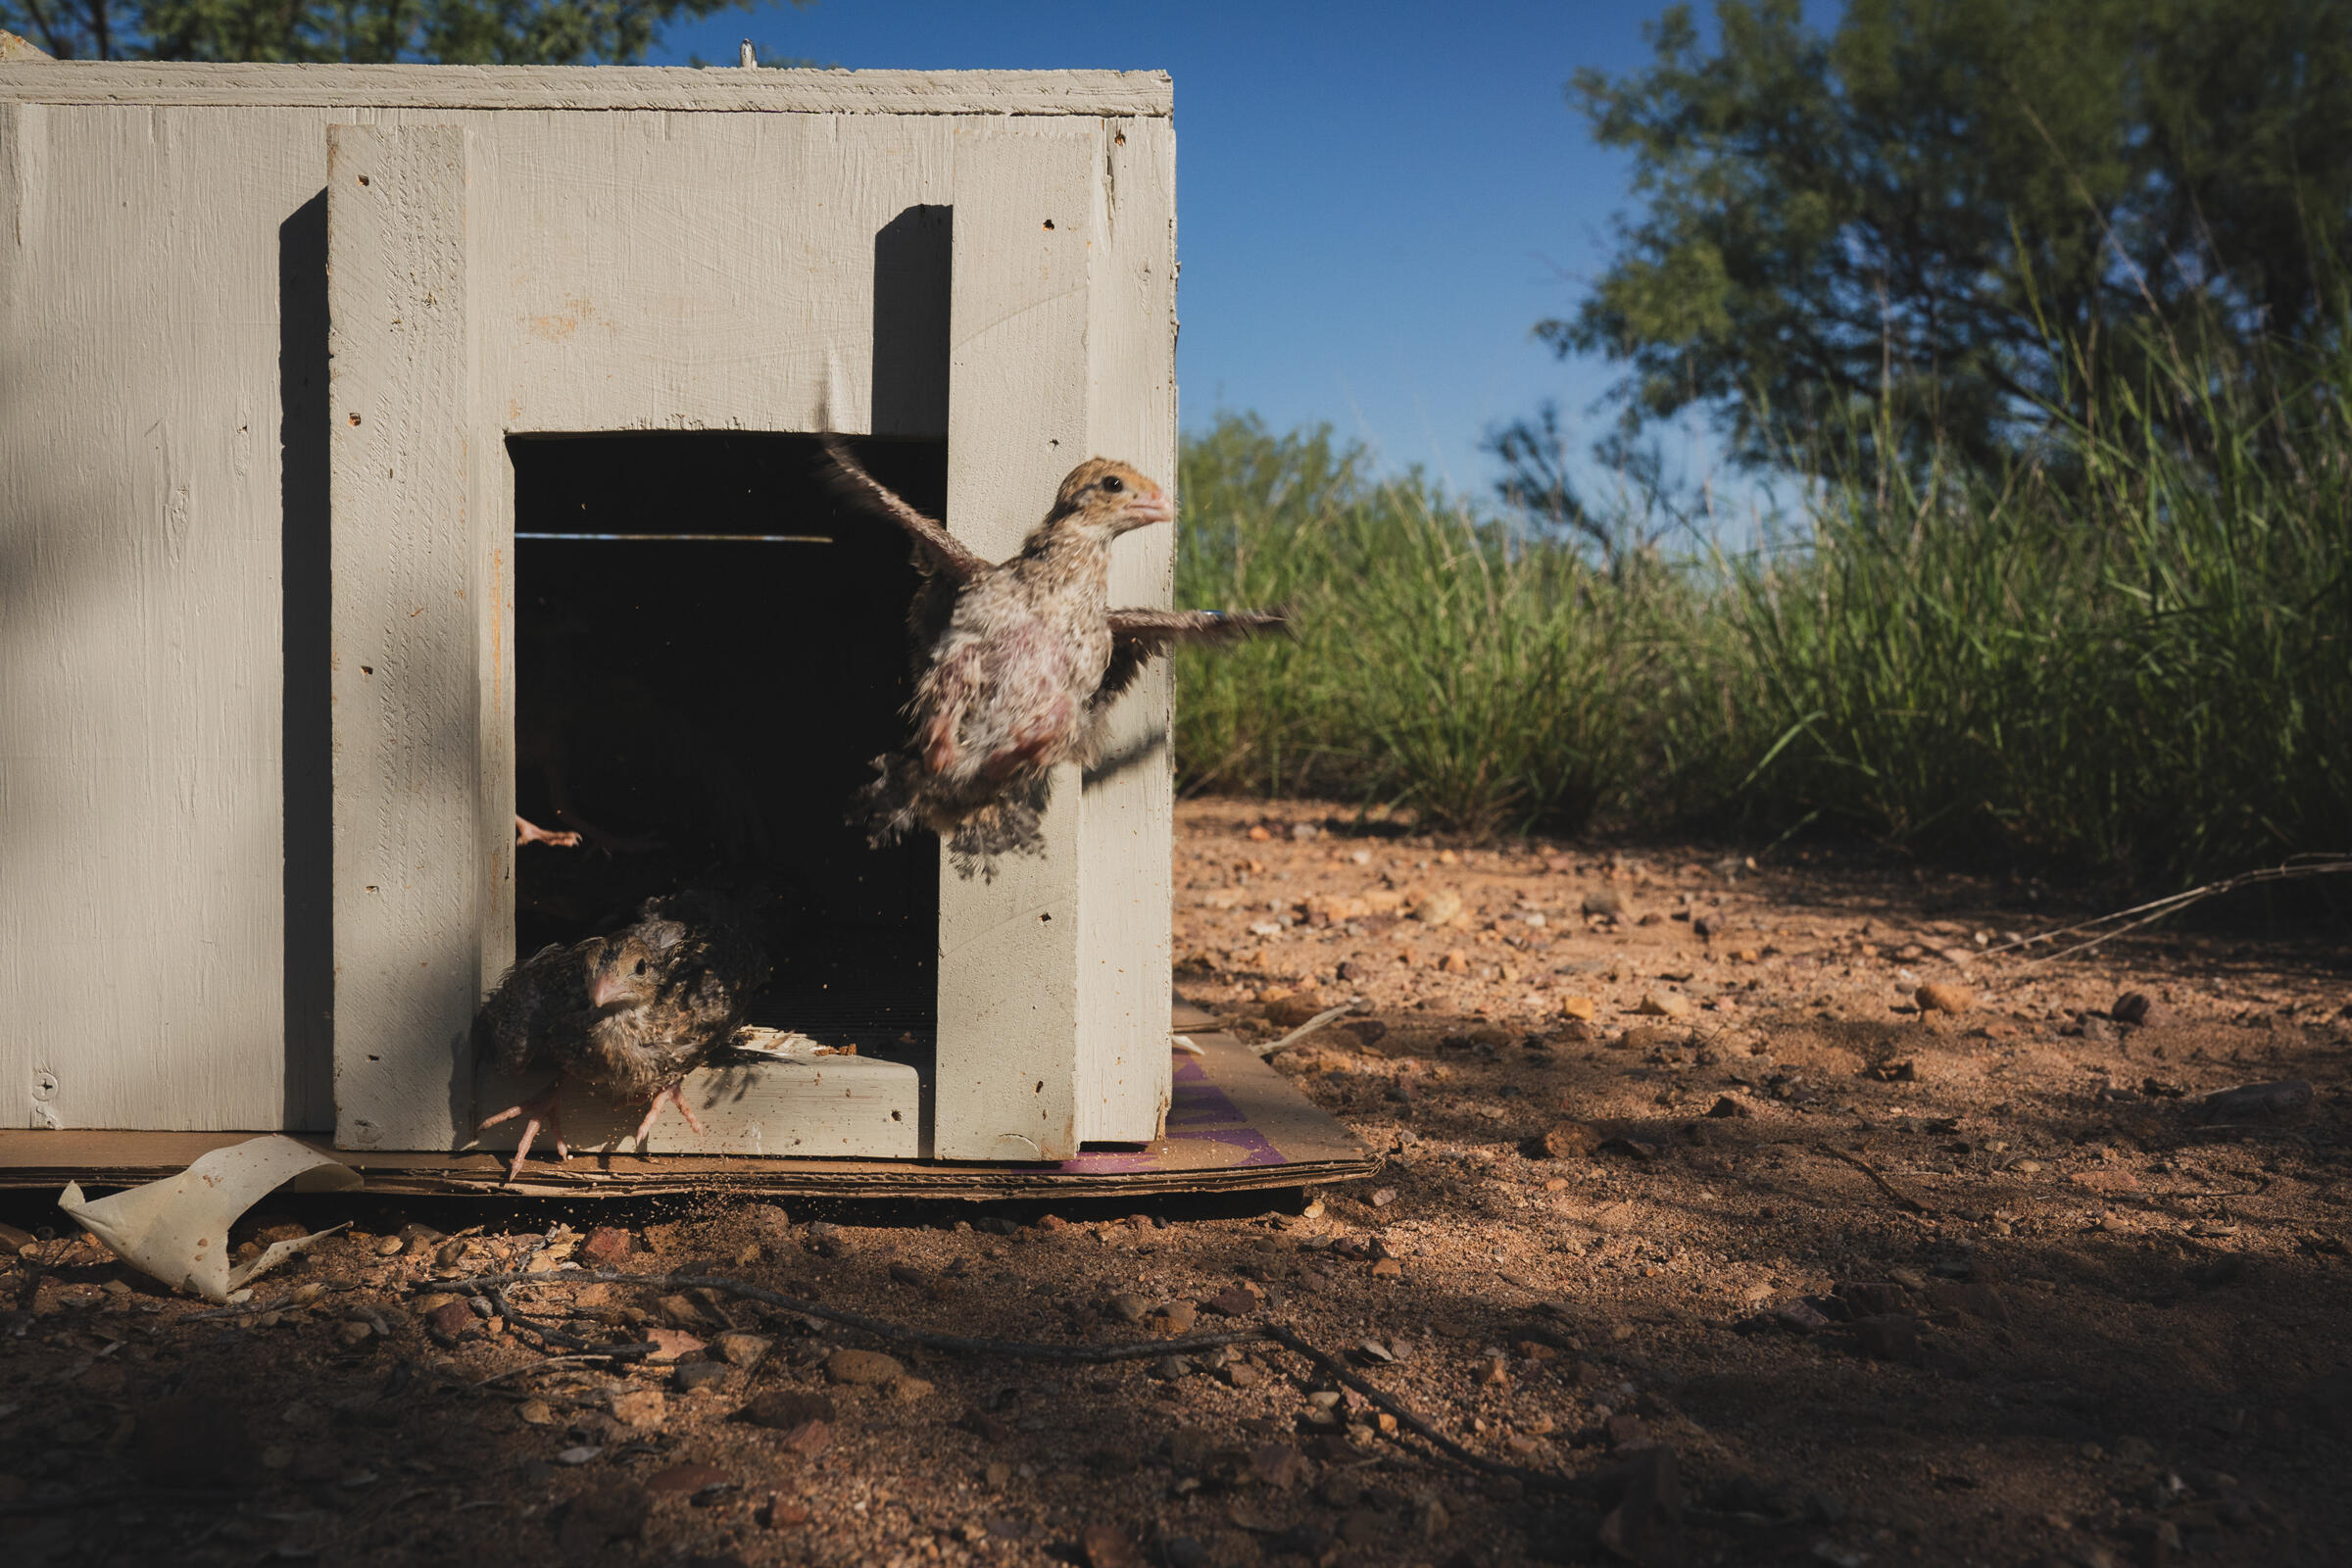 Sometimes chicks walk out of the box. Sometimes they run. Sometimes they erupt in an awkward, clumsy tumult of feathers. However it happens, these young birds are getting their first taste of freedom. Morgan Heim